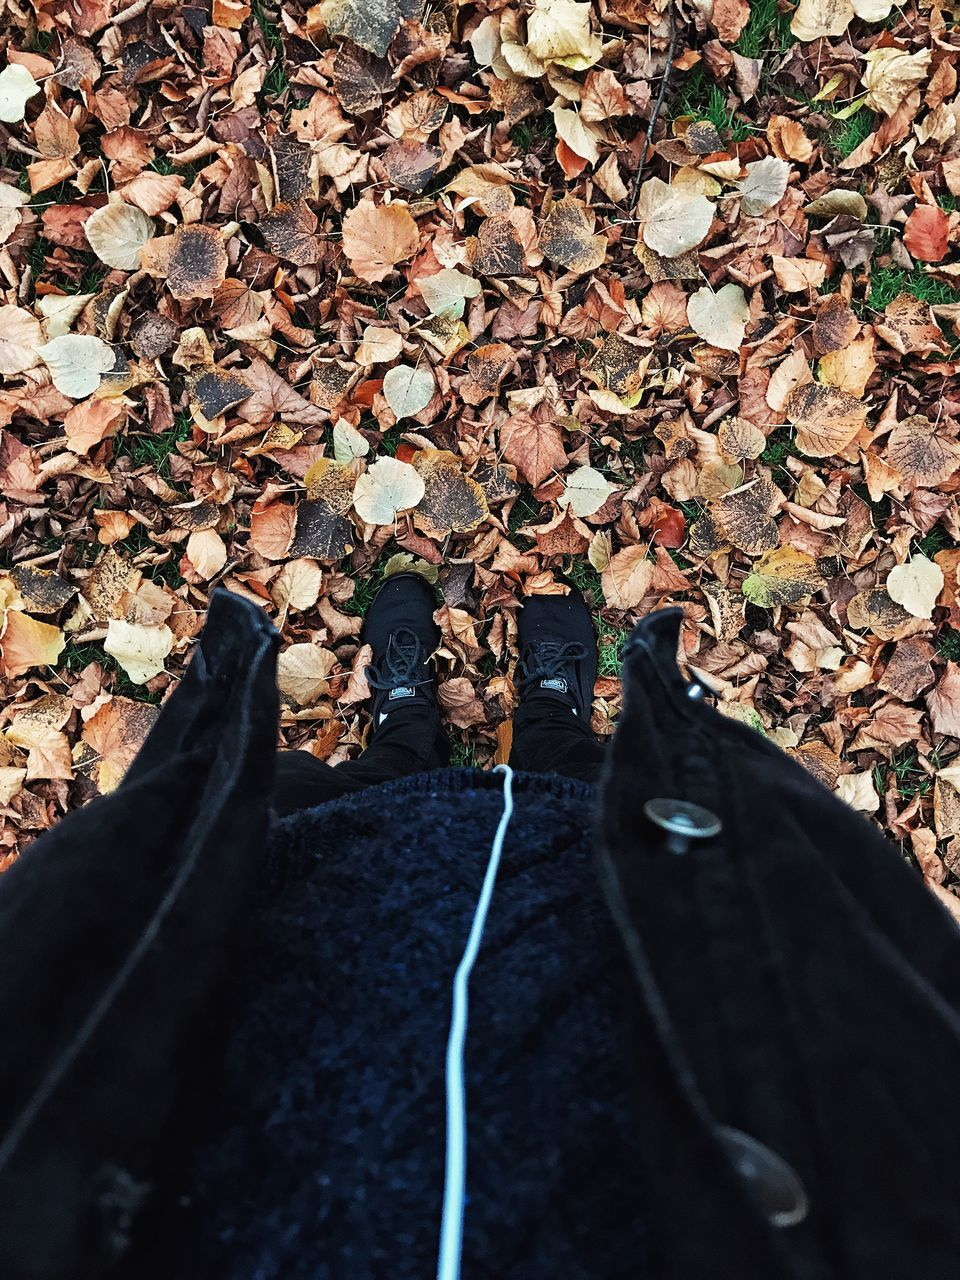 autumn, leaf, change, nature, abundance, day, outdoors, real people, men, beauty in nature, one person, close-up, people